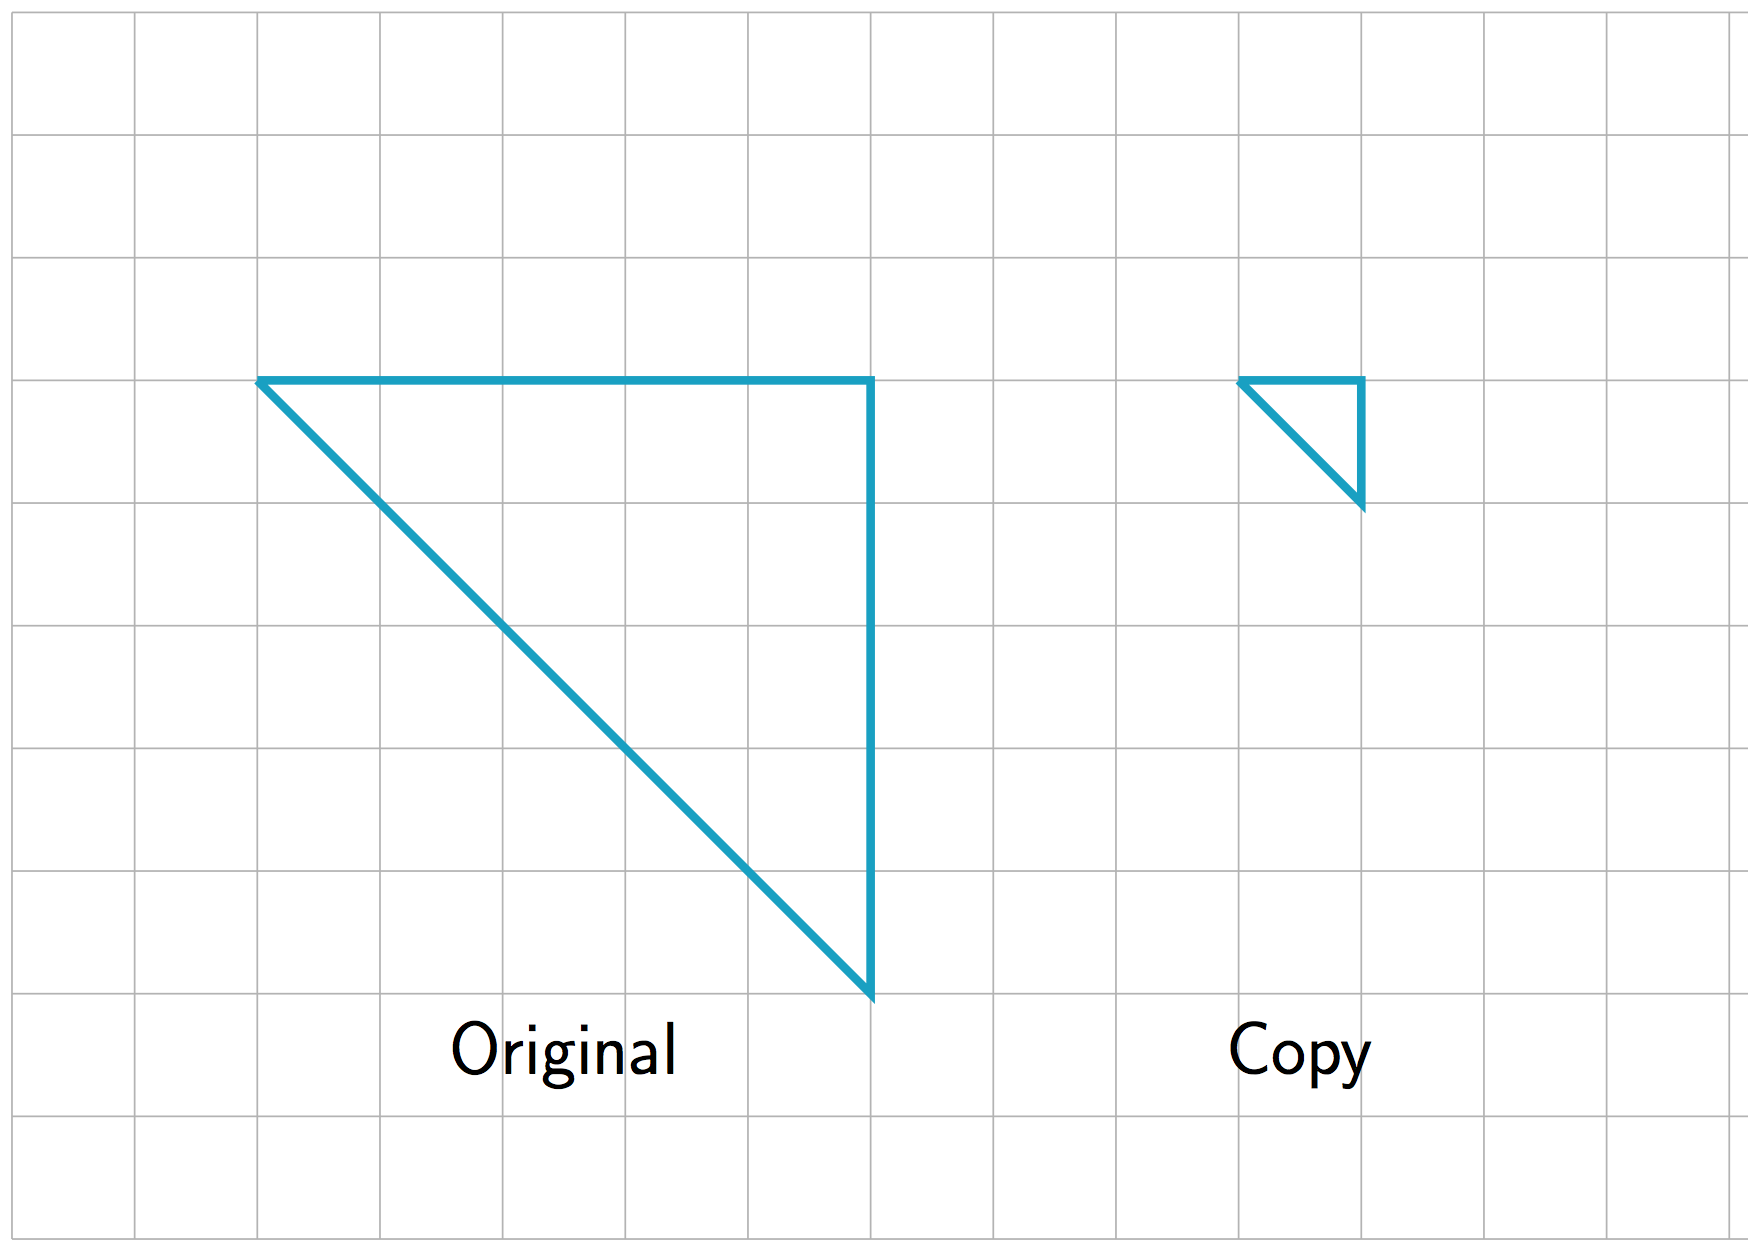 On a grid. Original triangle has sides of length 5, 5, and a diagonal length of down 5, over 5. The copy has side lengths of 1, 1, and a diagonal length of down 1, over 1.